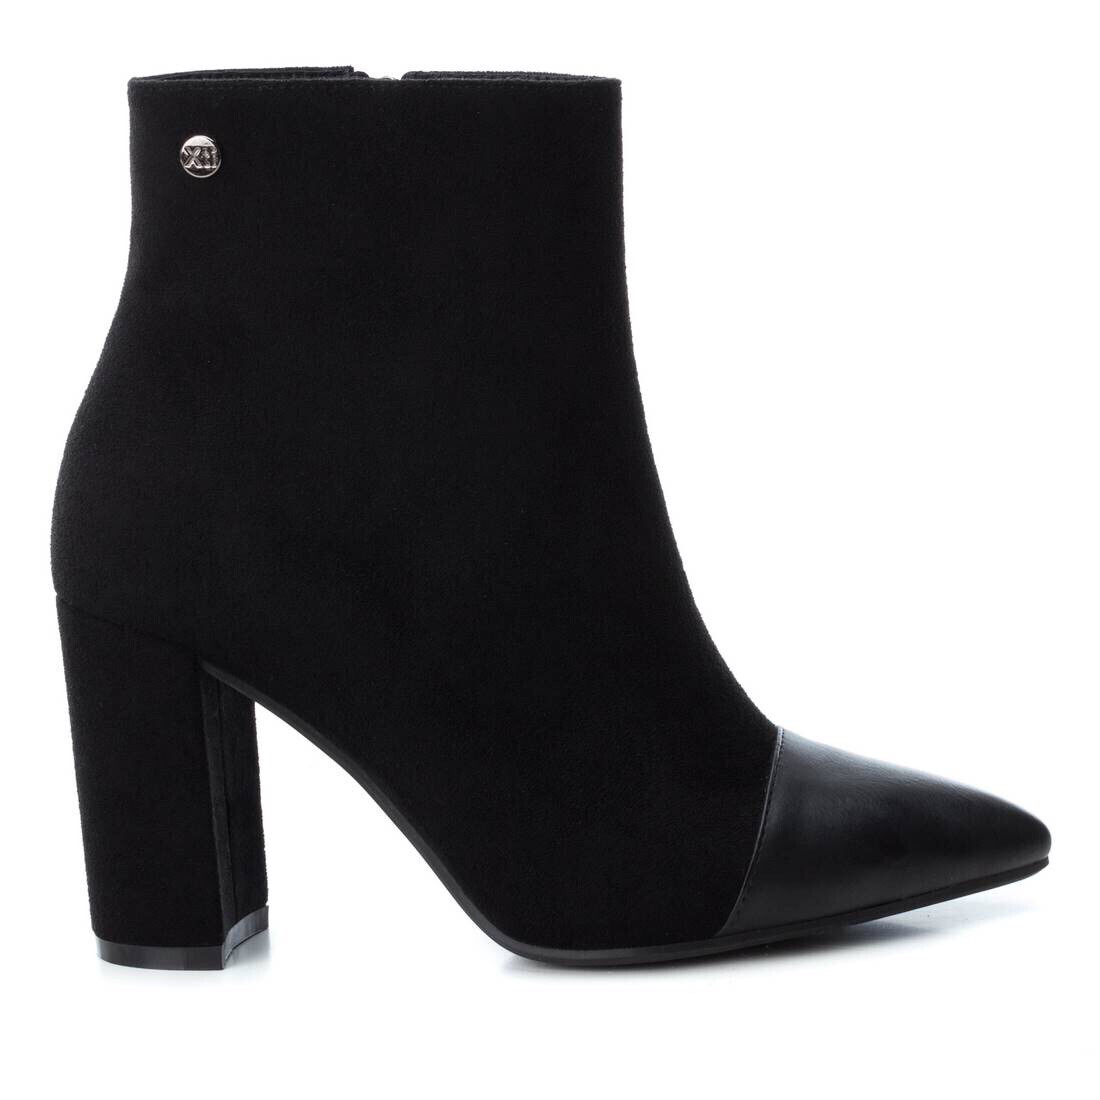 Black Suede Ankle Boot With Leather Front